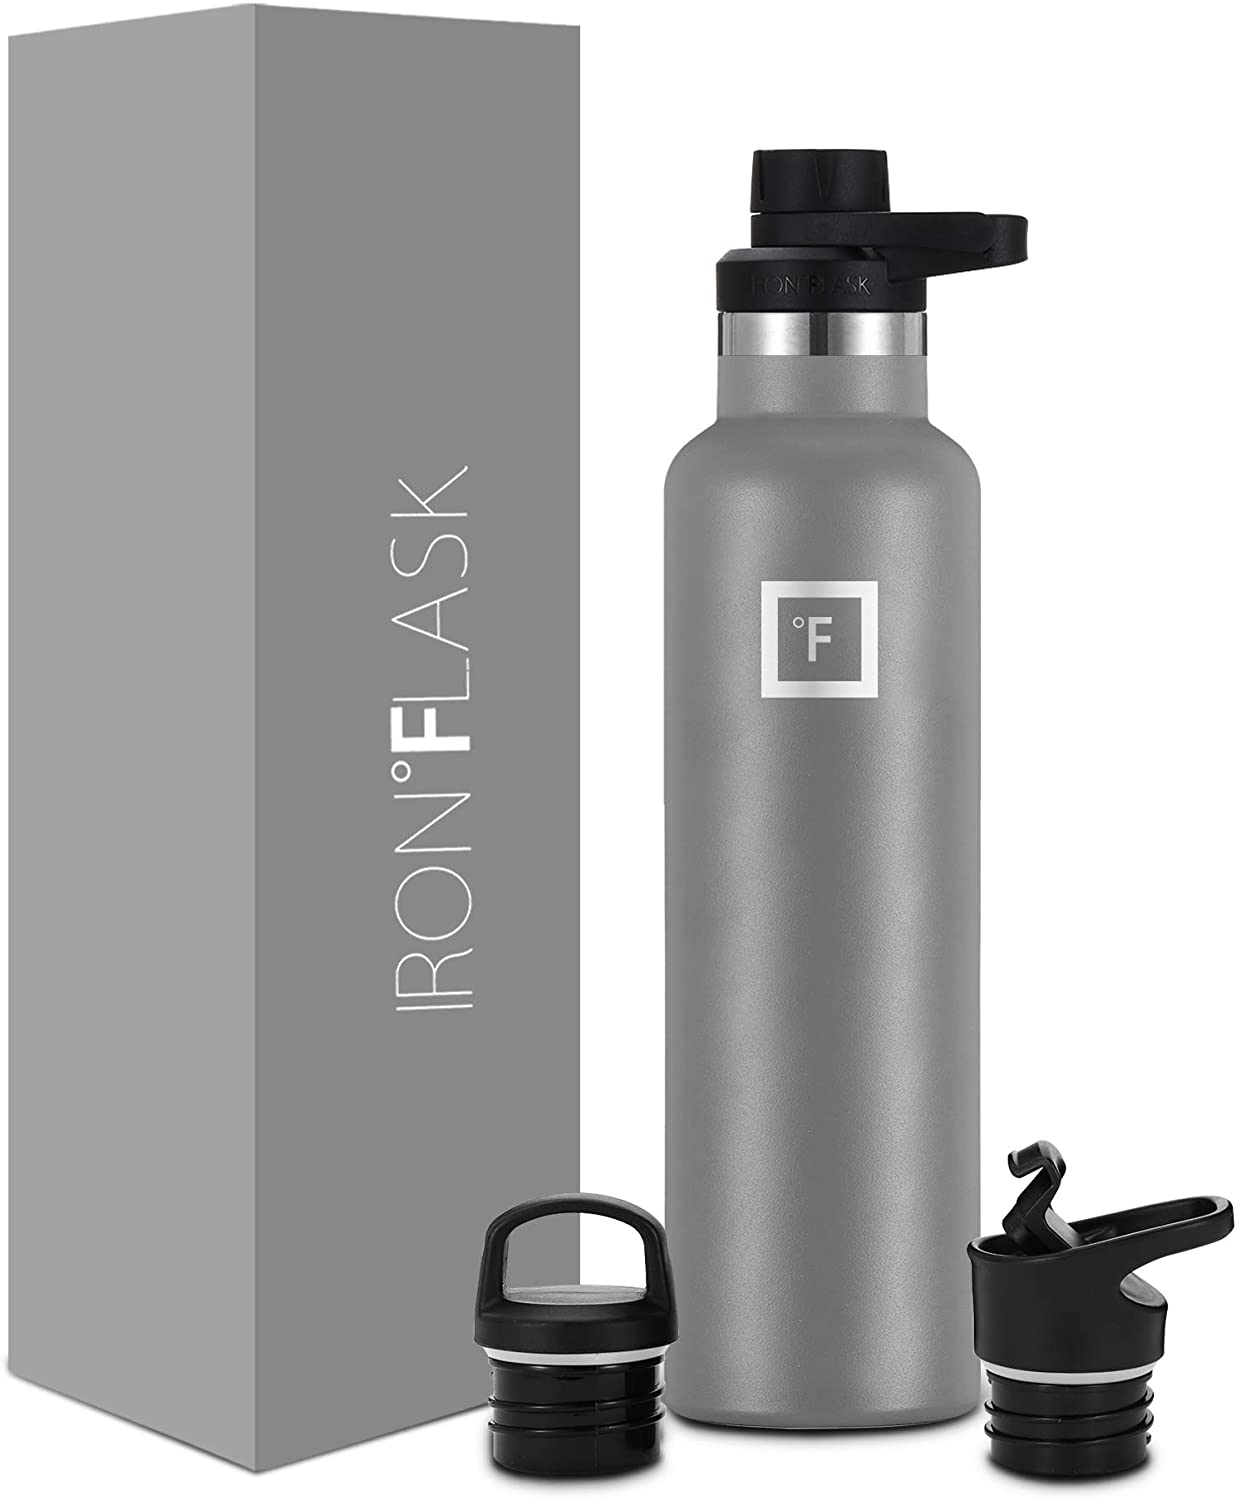 Iron Flask Narrow Mouth Sports Water Bottle - 64 Oz, 3 Lids (Spout Lid), Vacuum Insulated Stainless Steel, Hot Cold, Modern Double Walled, Simple Thermo Mug, Standard Hydro Metal Canteen graphite